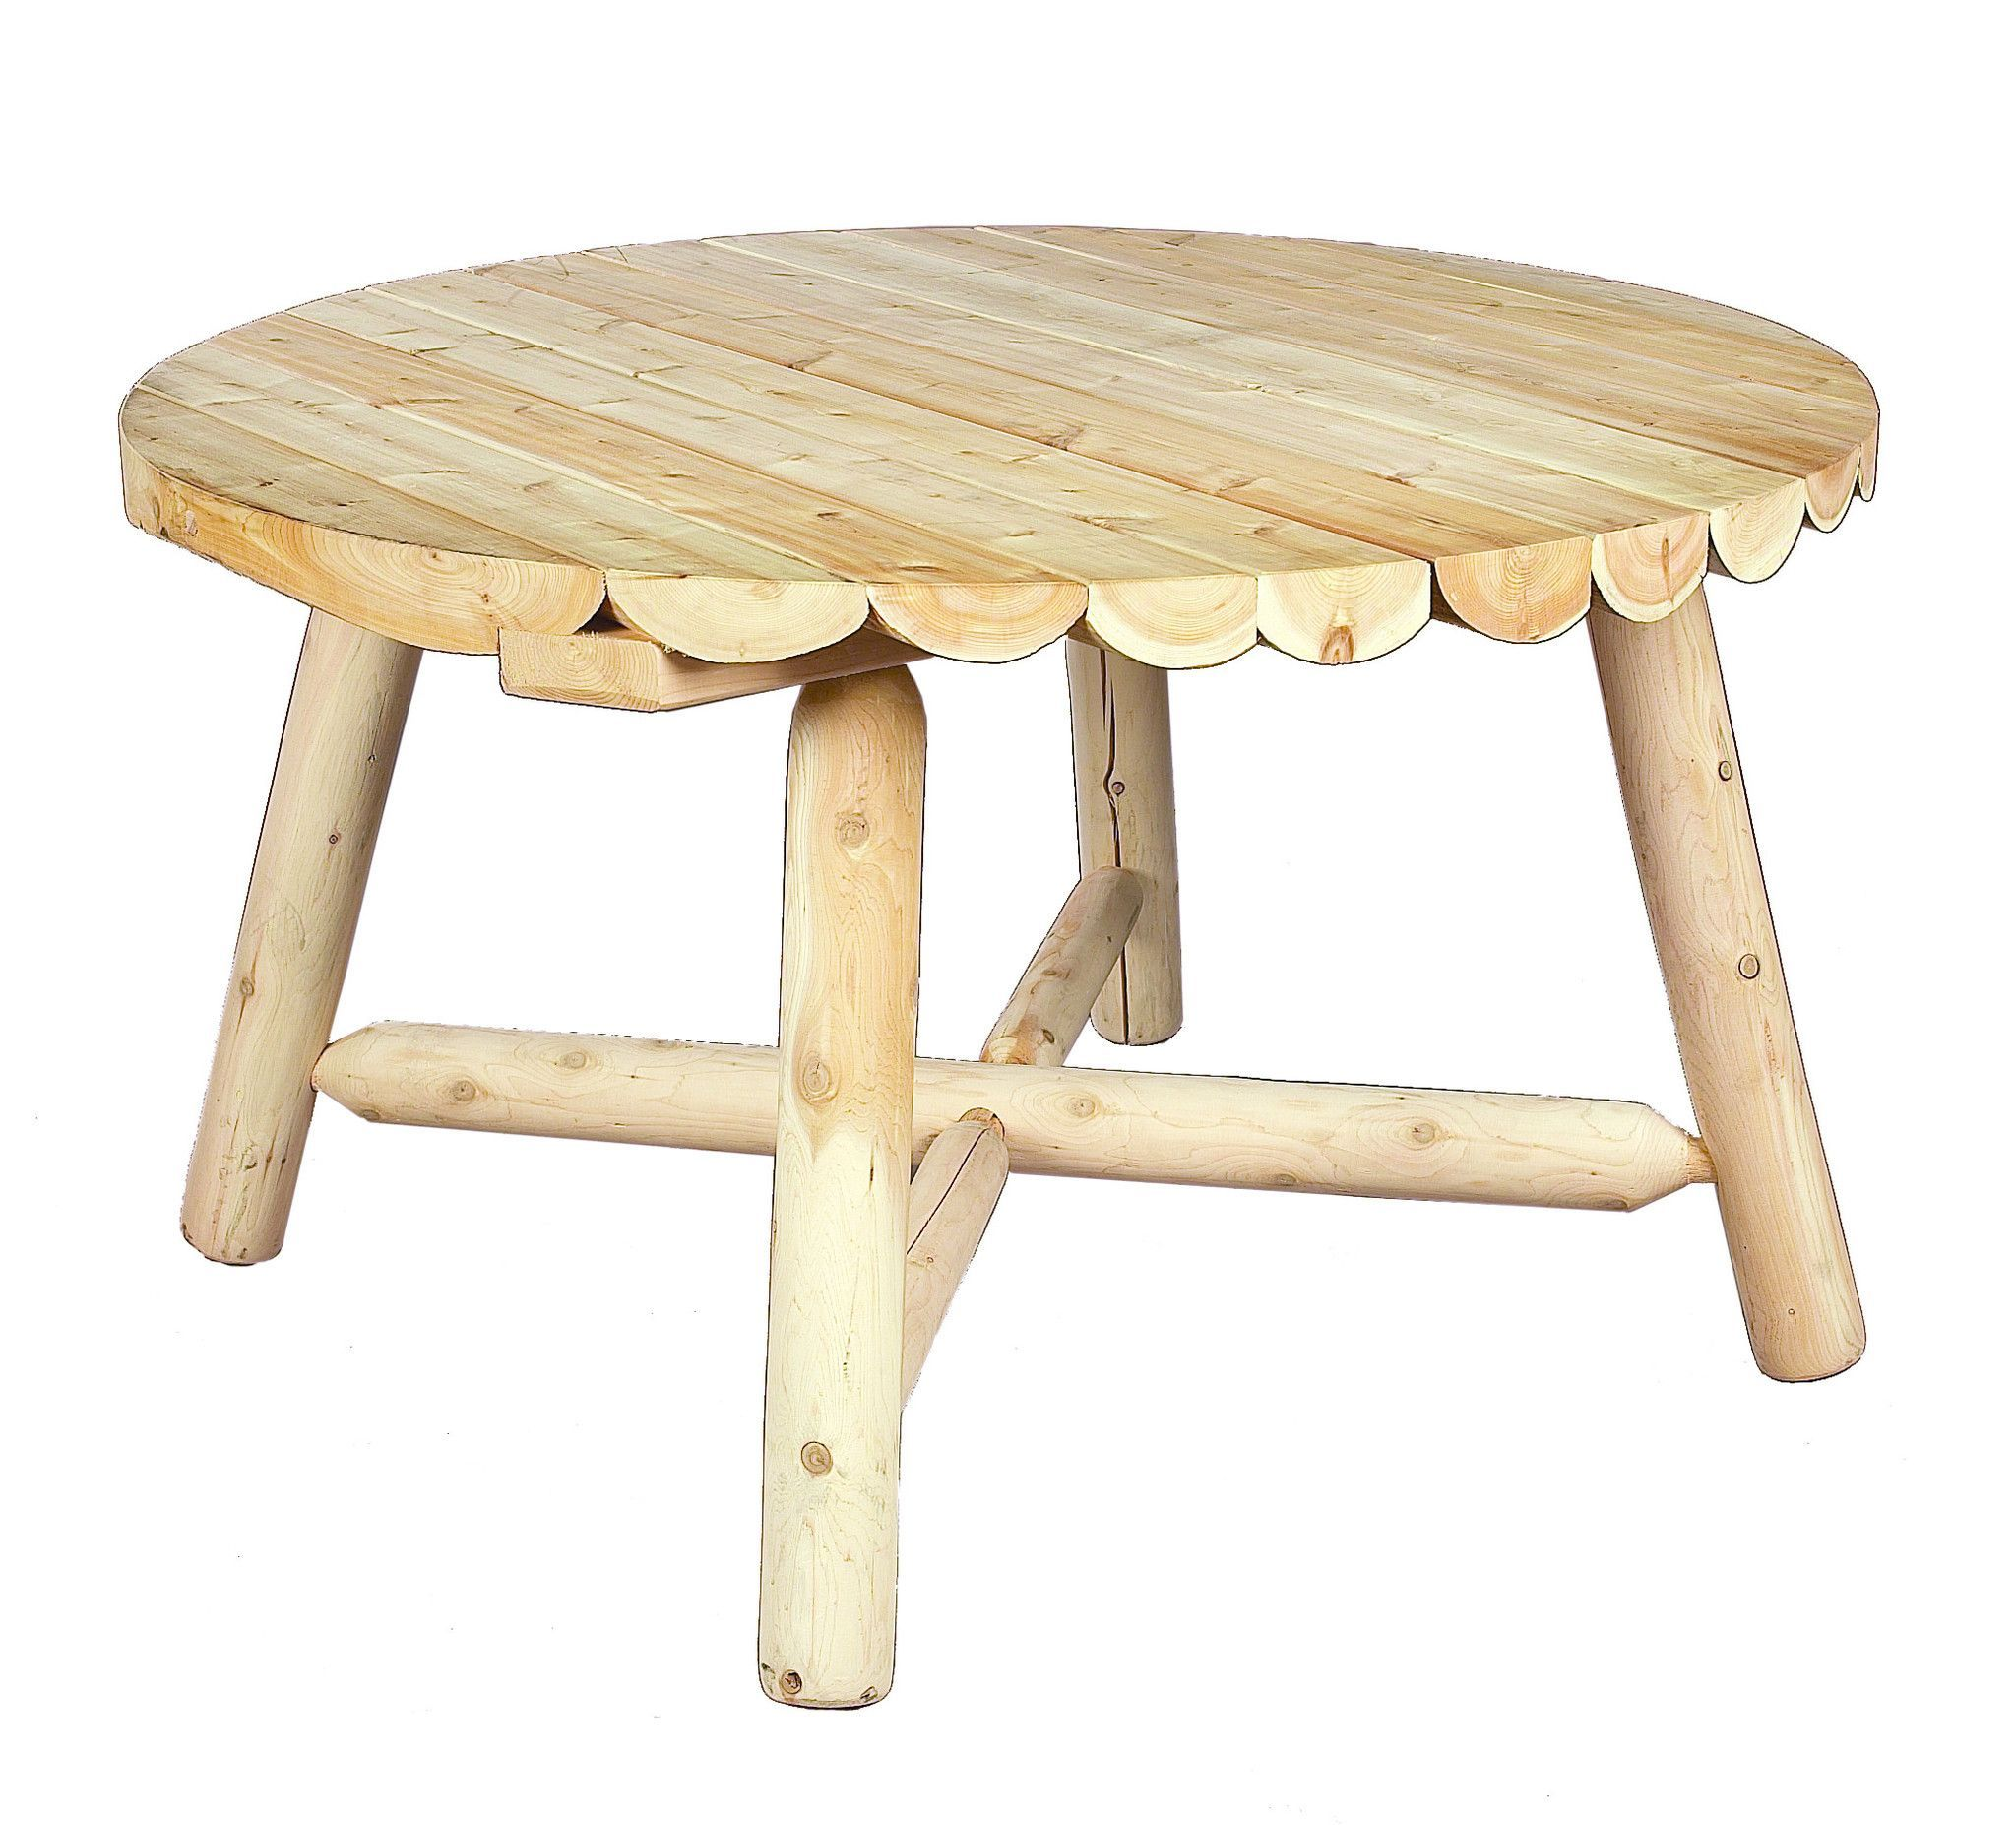 Rustic Natural Cedar 200013 Round Dining Table 48\